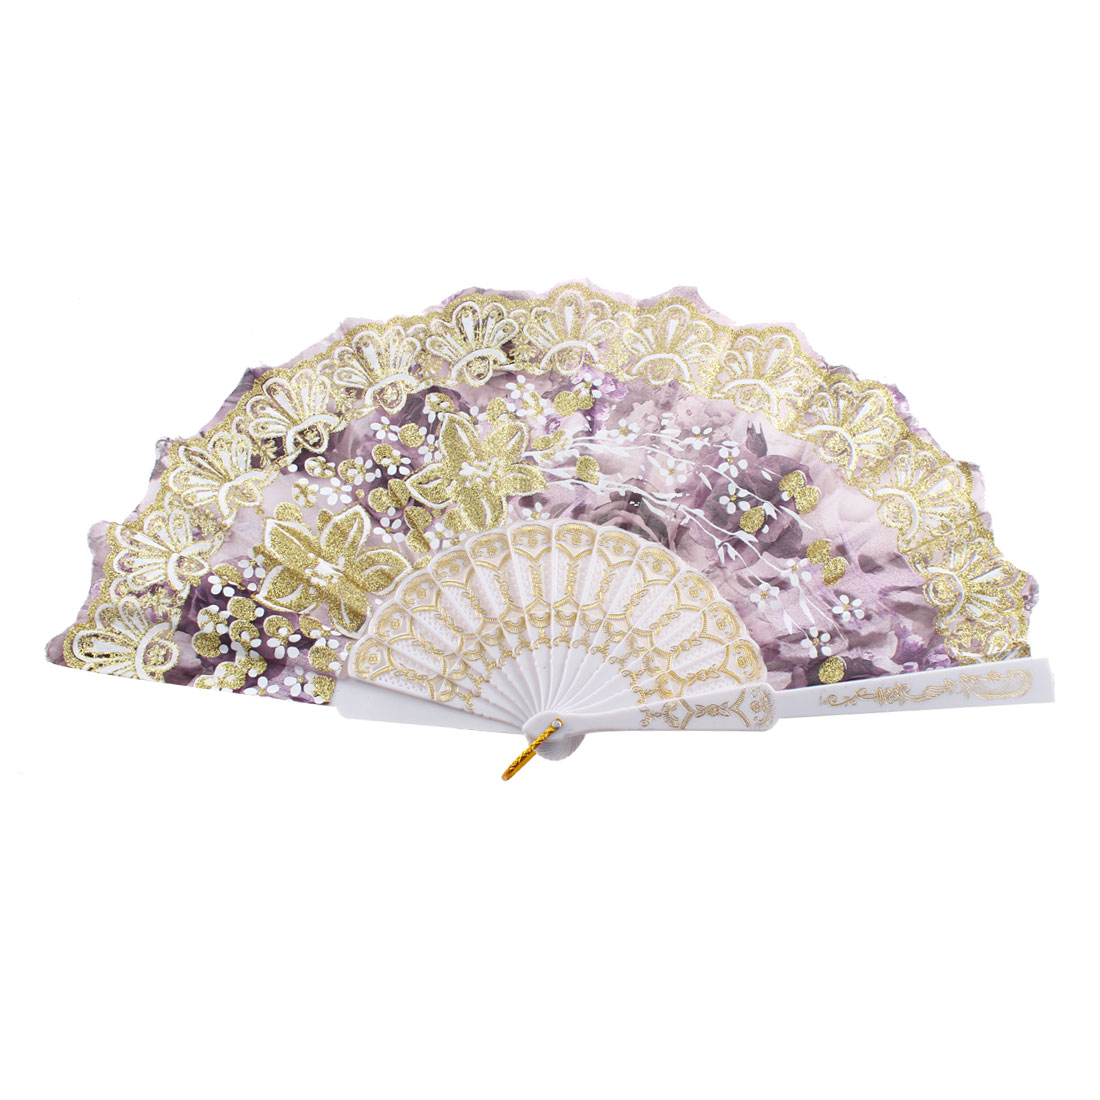 Hollow Out Frame Glittery Powder Decor Floral Pattern Folded Hand Fan Gold Tone